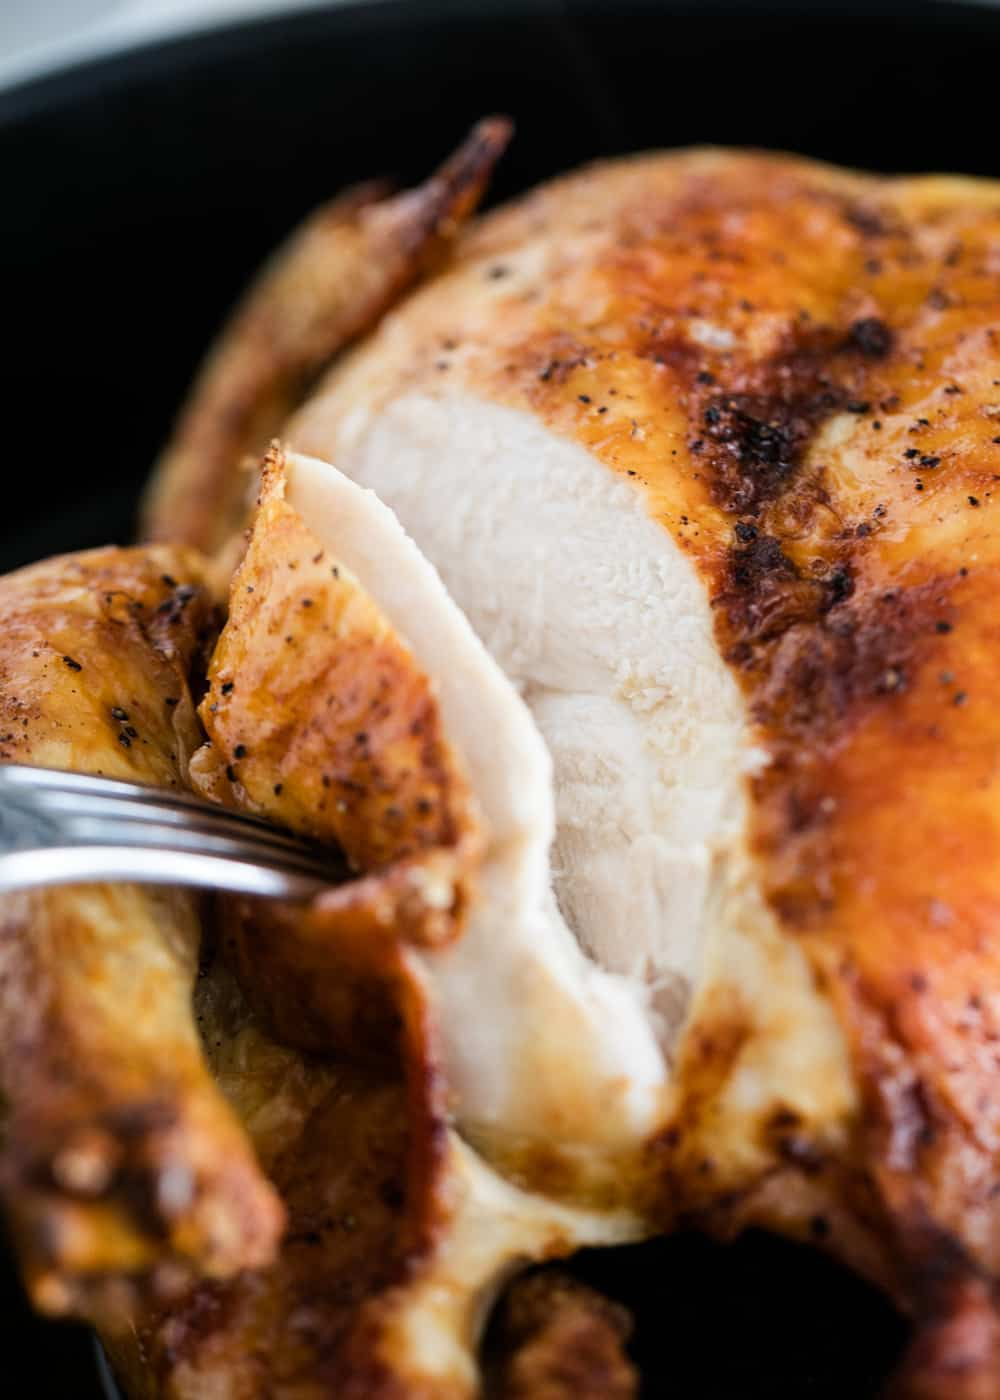 carving a baked whole chicken